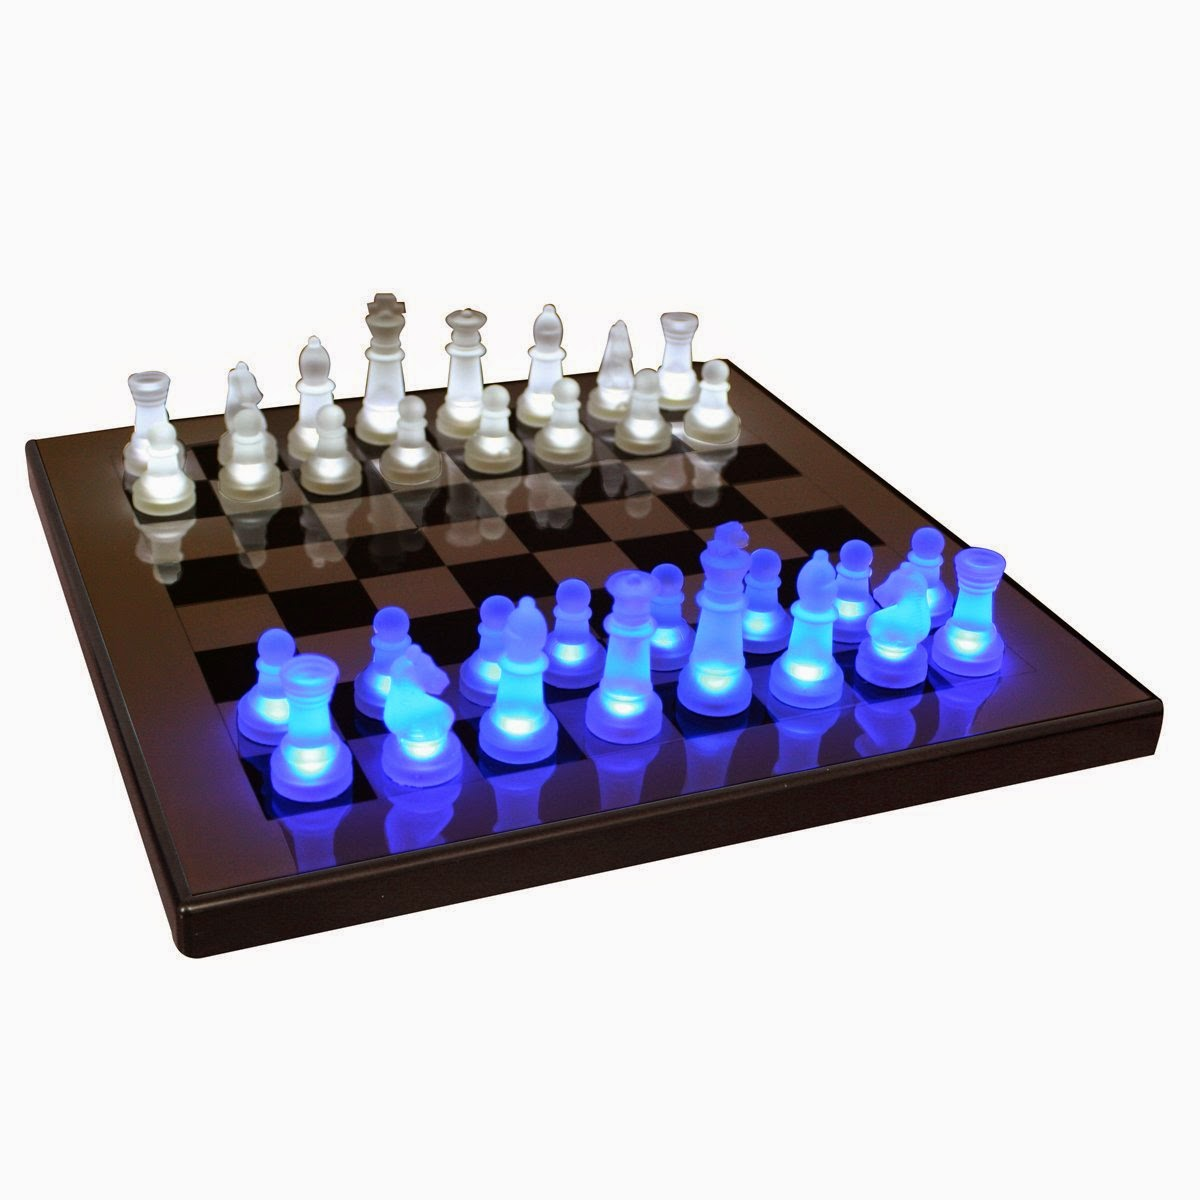 Unique Chess Sets 15 Awesome And Coolest Chess Sets Part 4